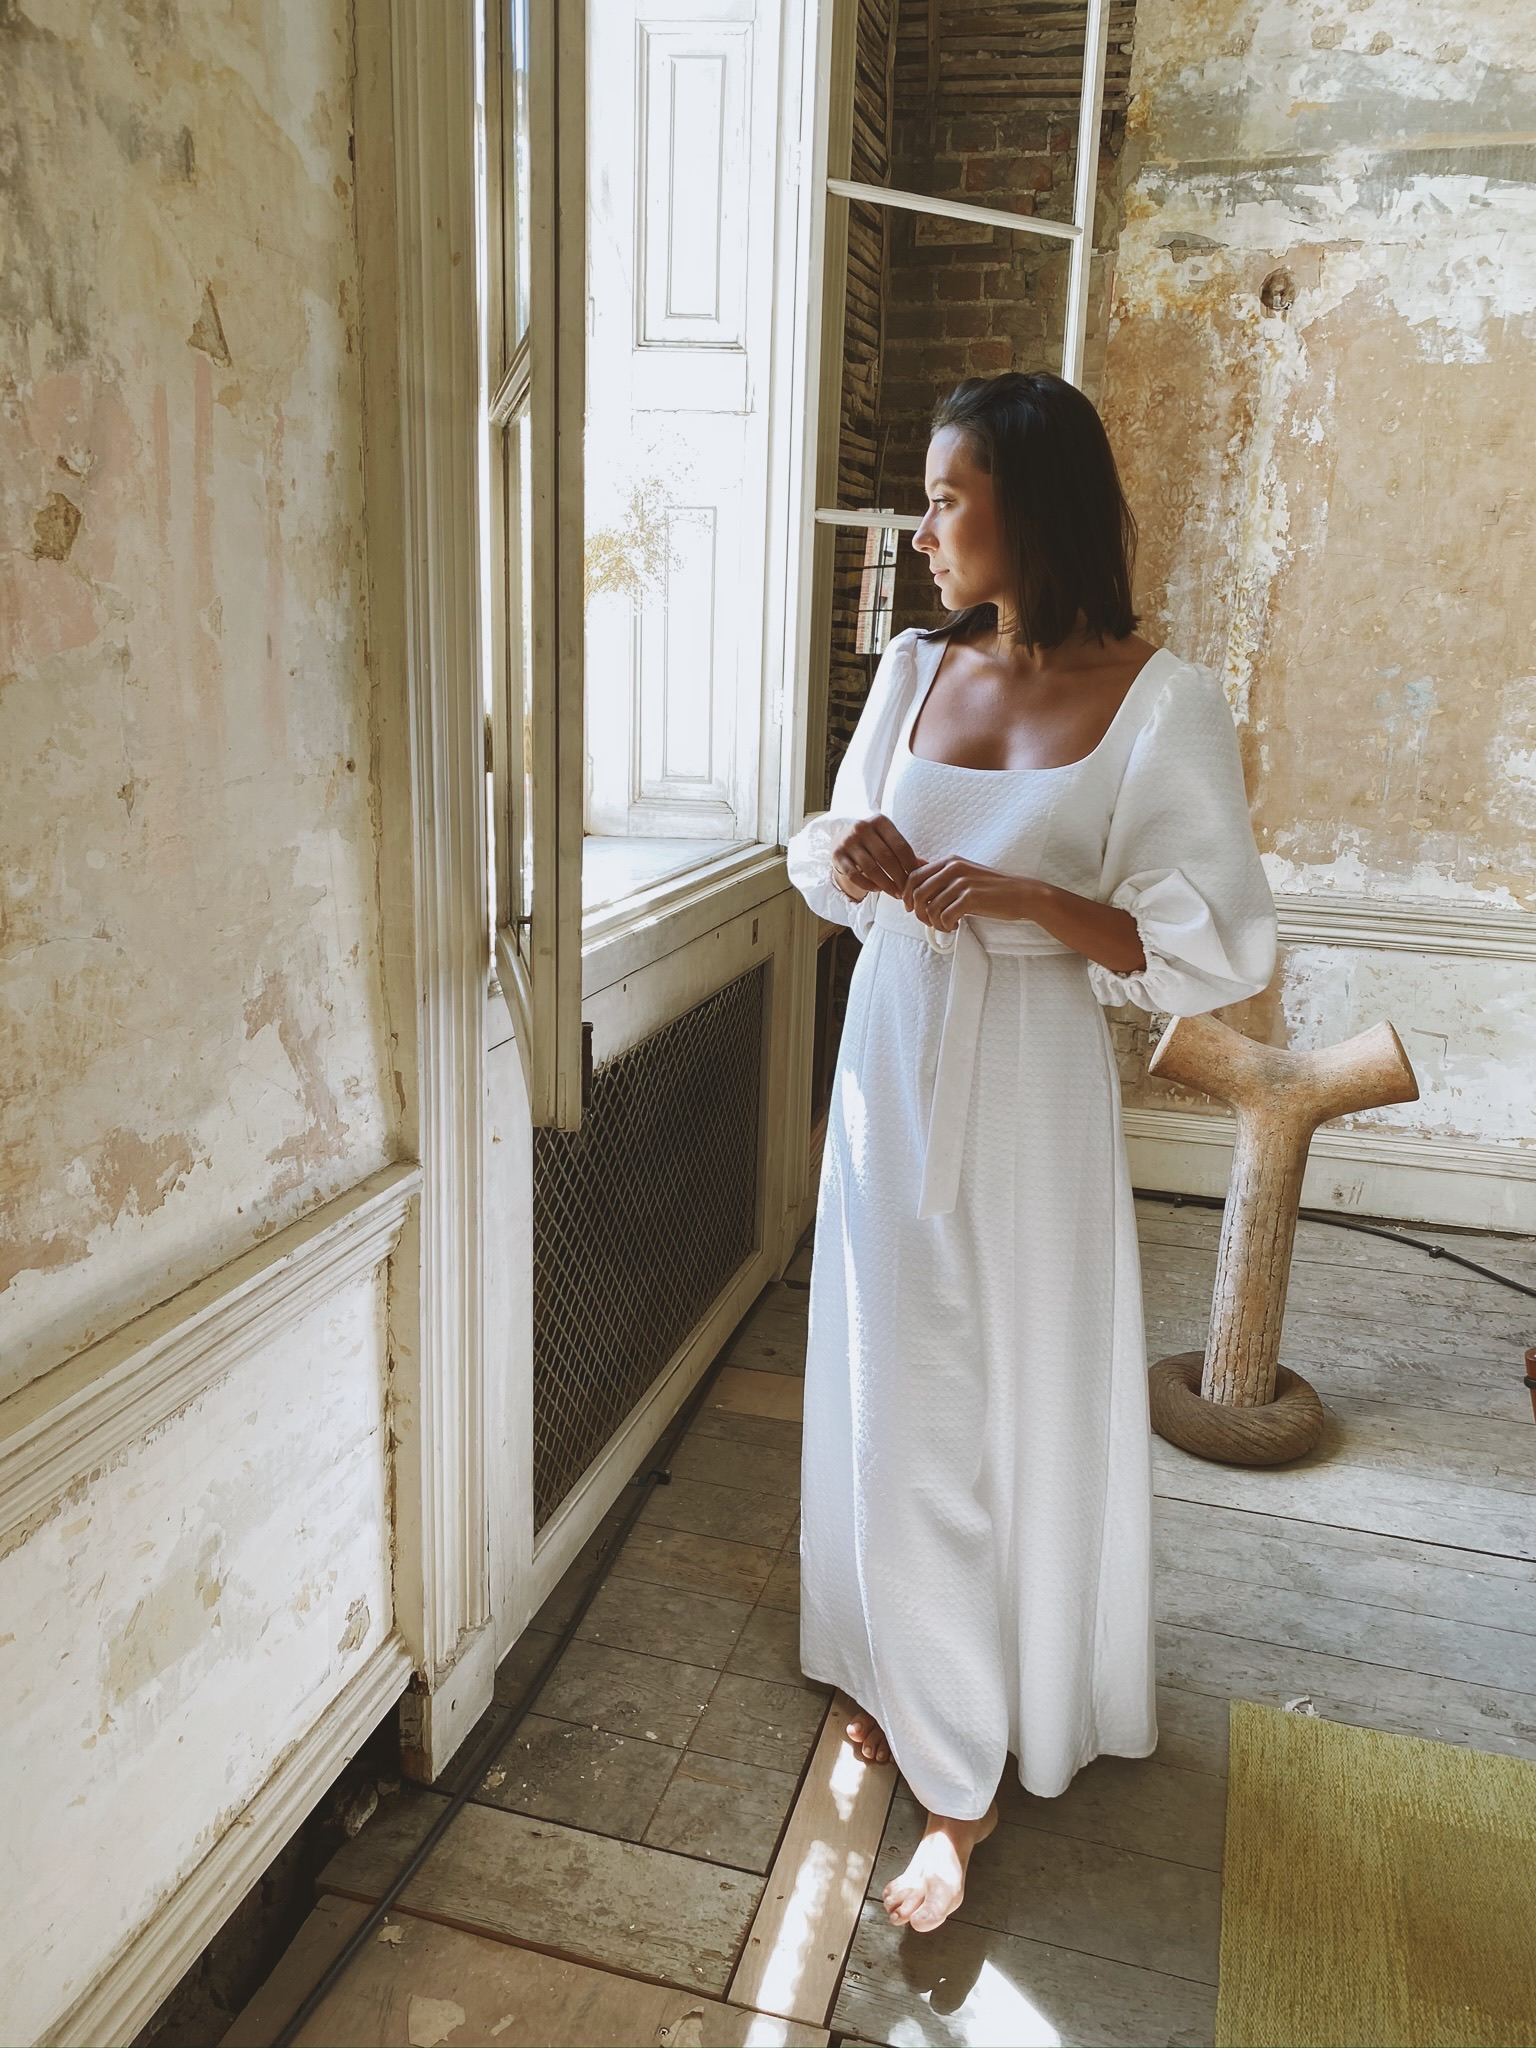 River Dress - White by Jessica K on curated-crowd.com